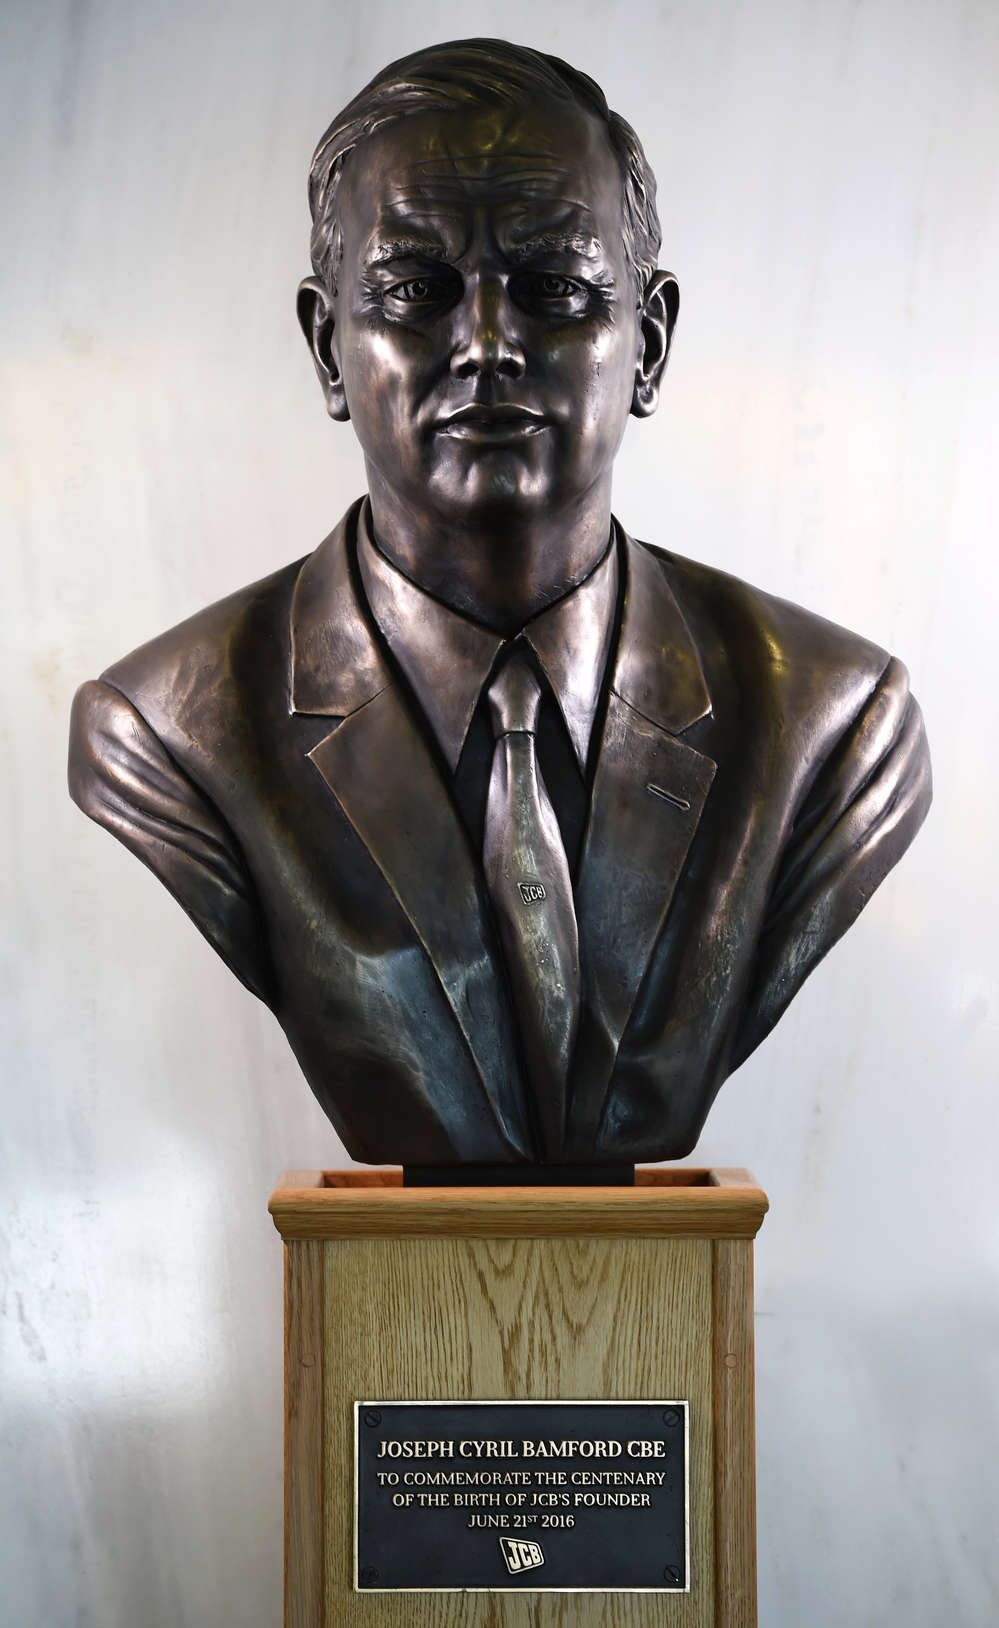 The 100th anniversary of the birth of JCB's founder was marked with the unveiling of a specially commissioned bronze bust.